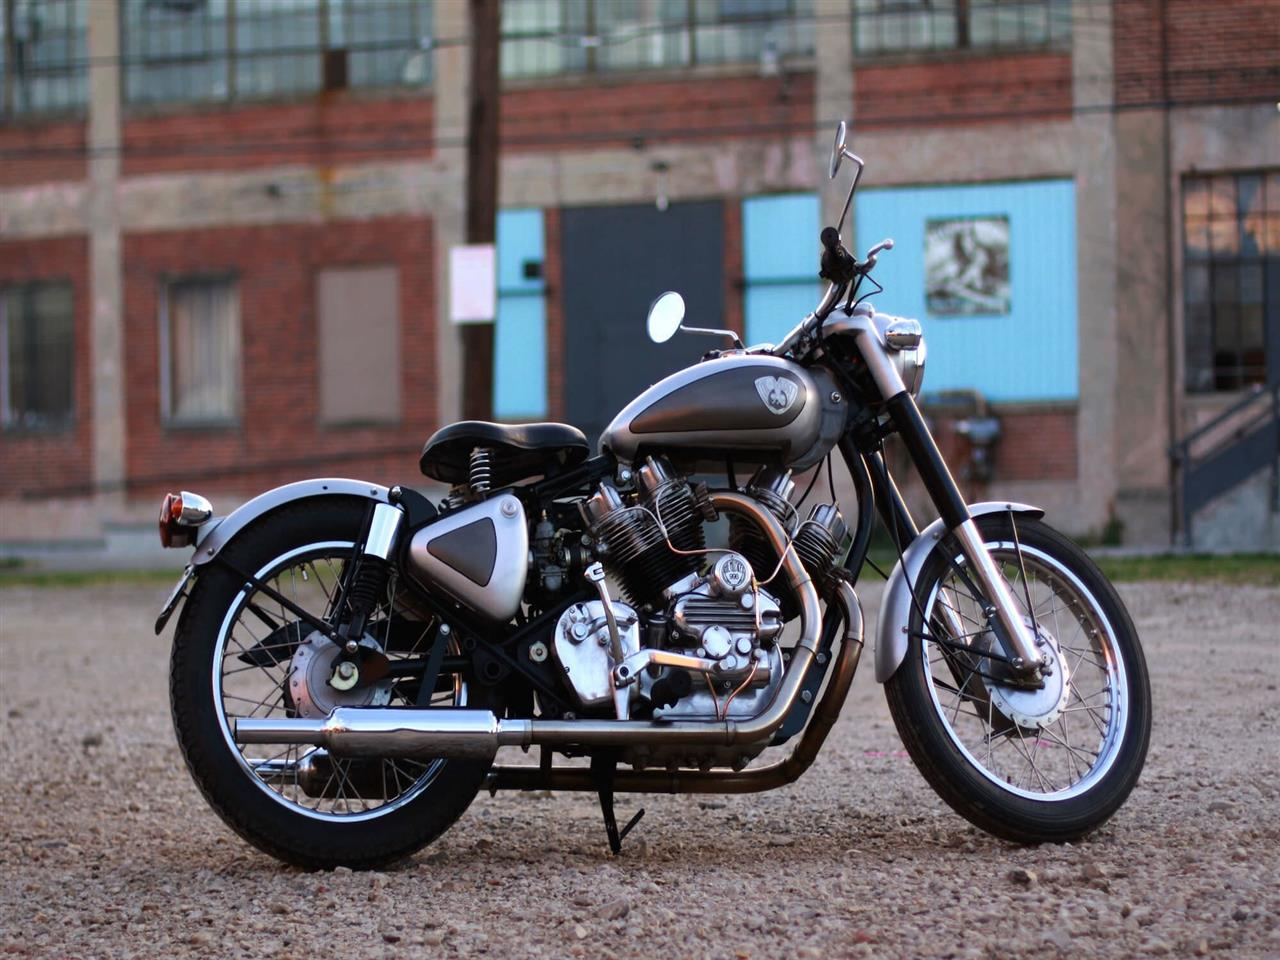 1280x960 Royal Enfield Bullet Bike Photo